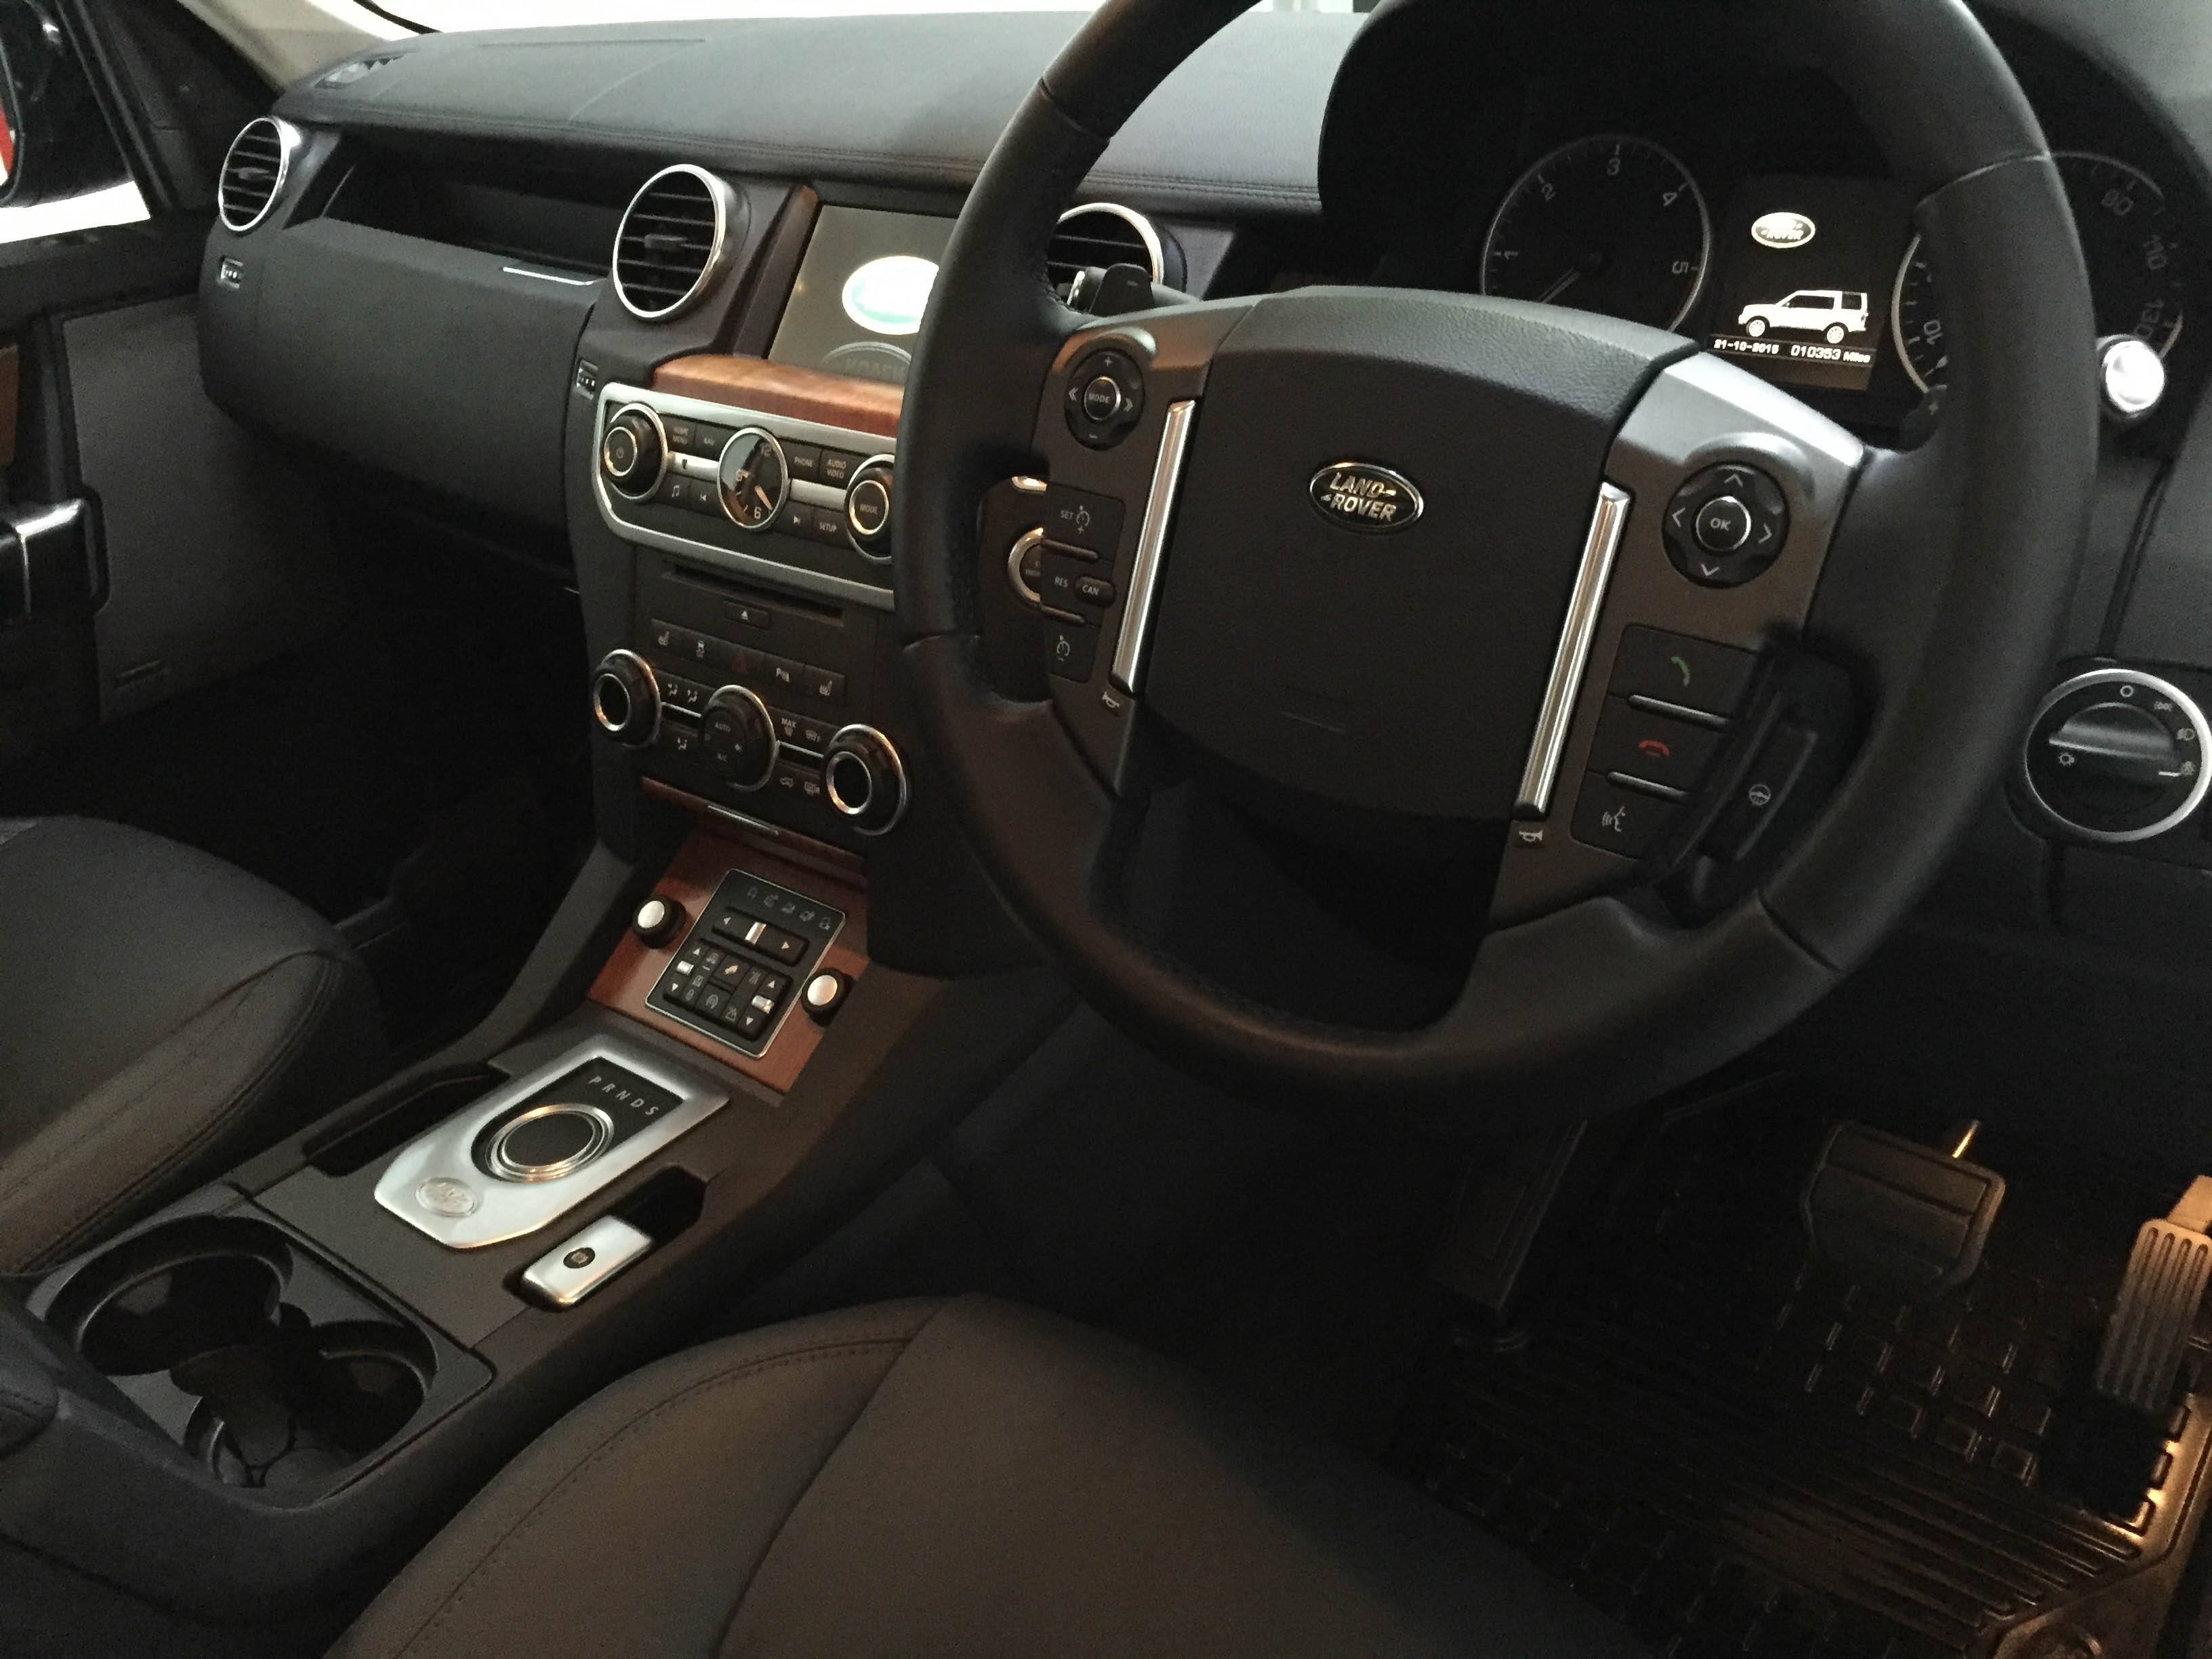 Land Rover Discovery – Interior